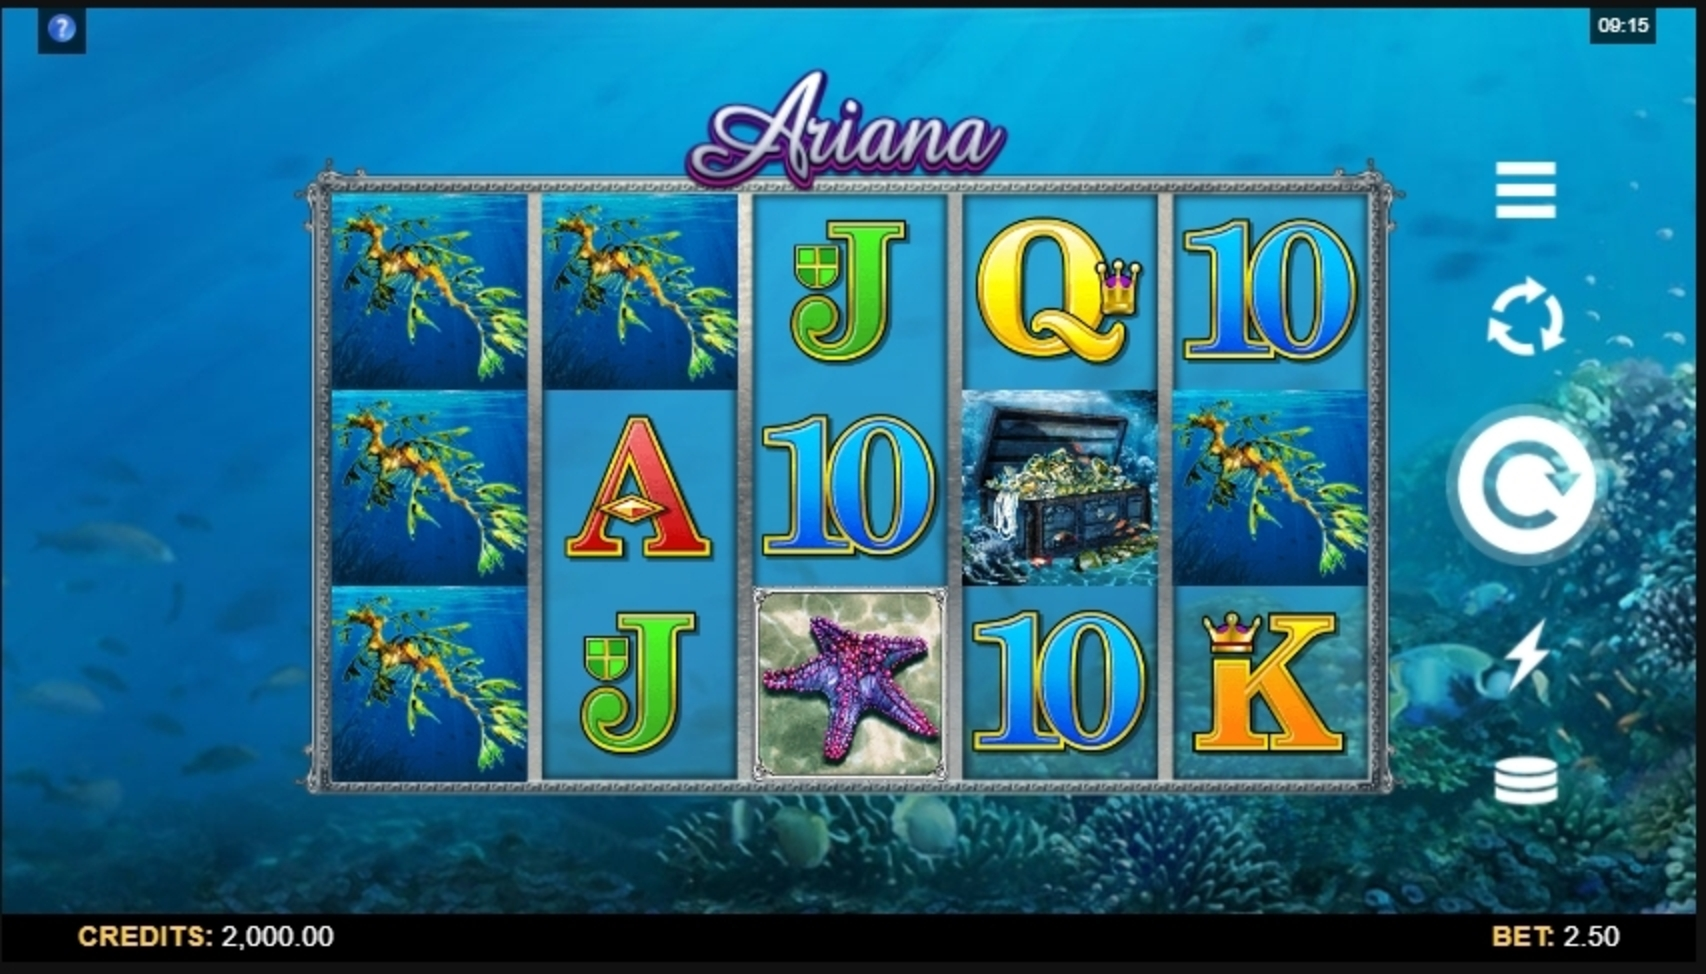 Reels in Ariana Slot Game by Microgaming